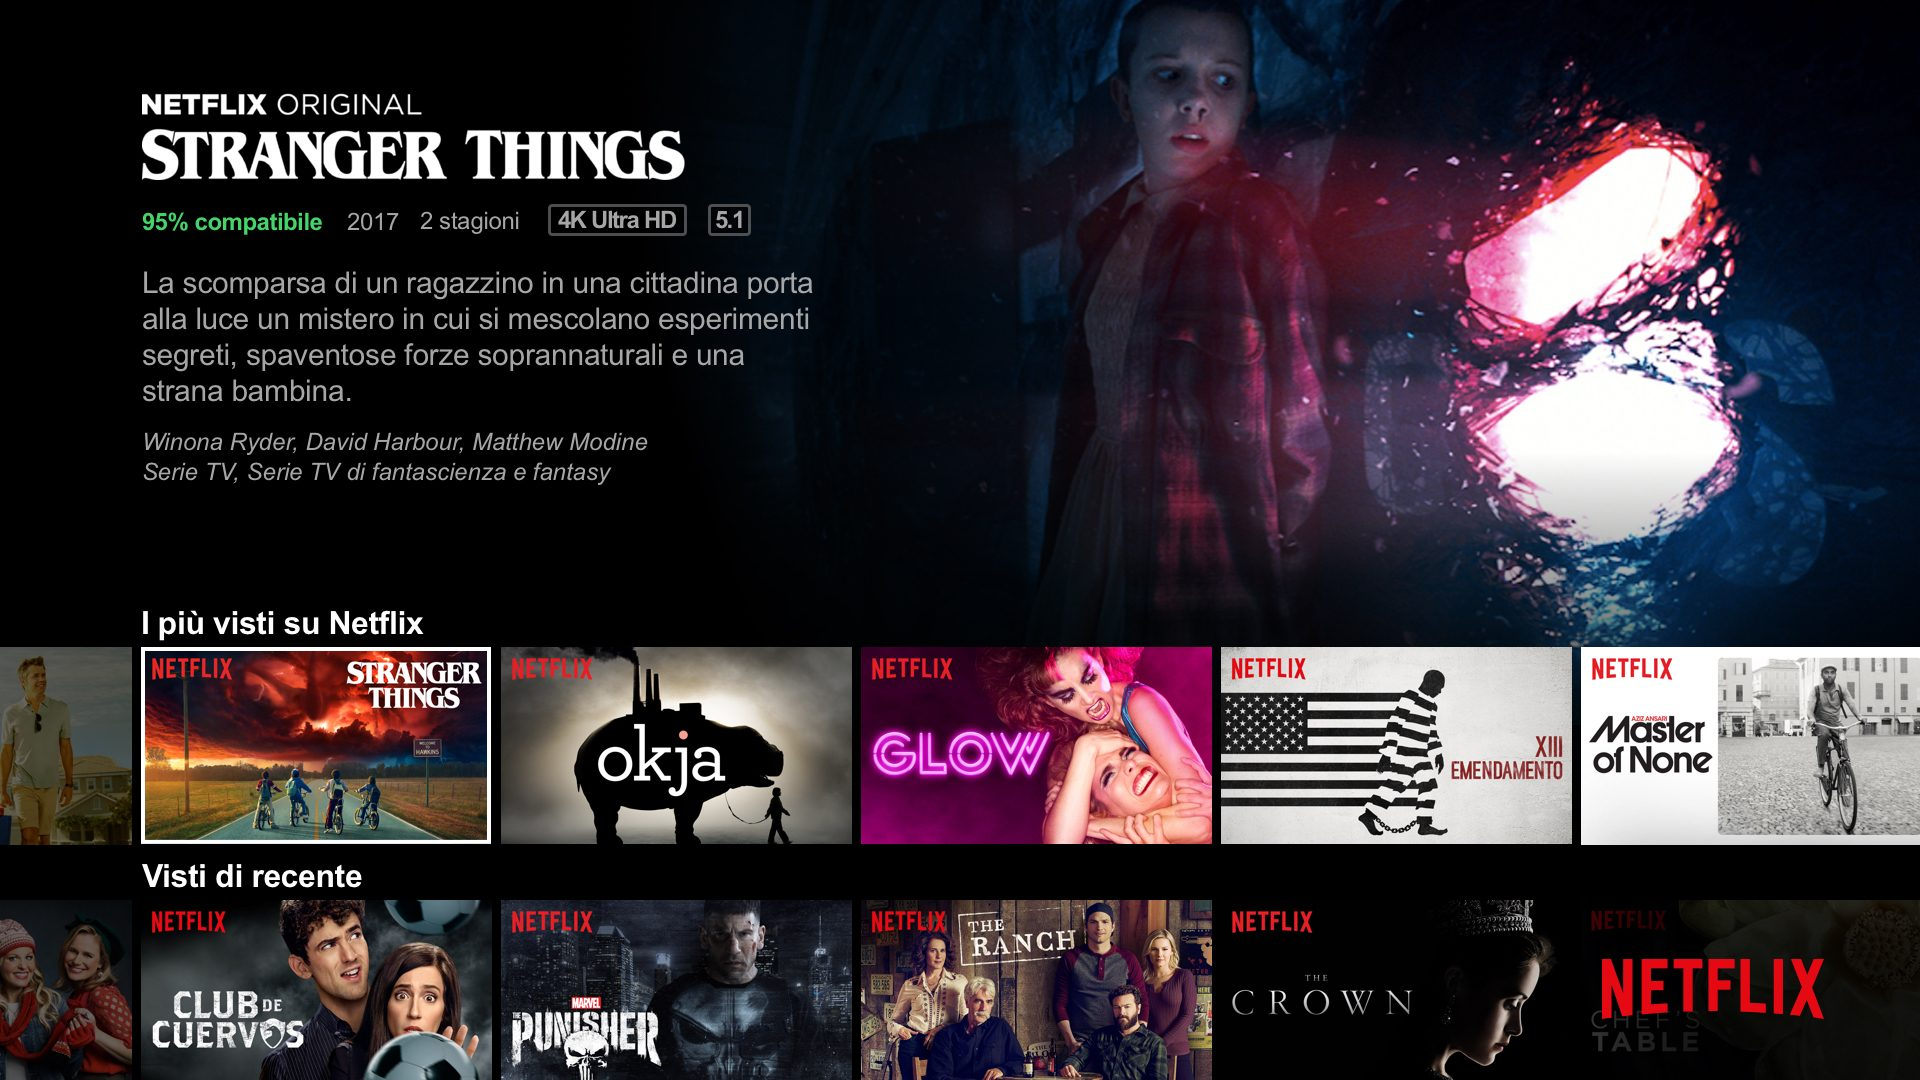 netflix stranger things anteprima